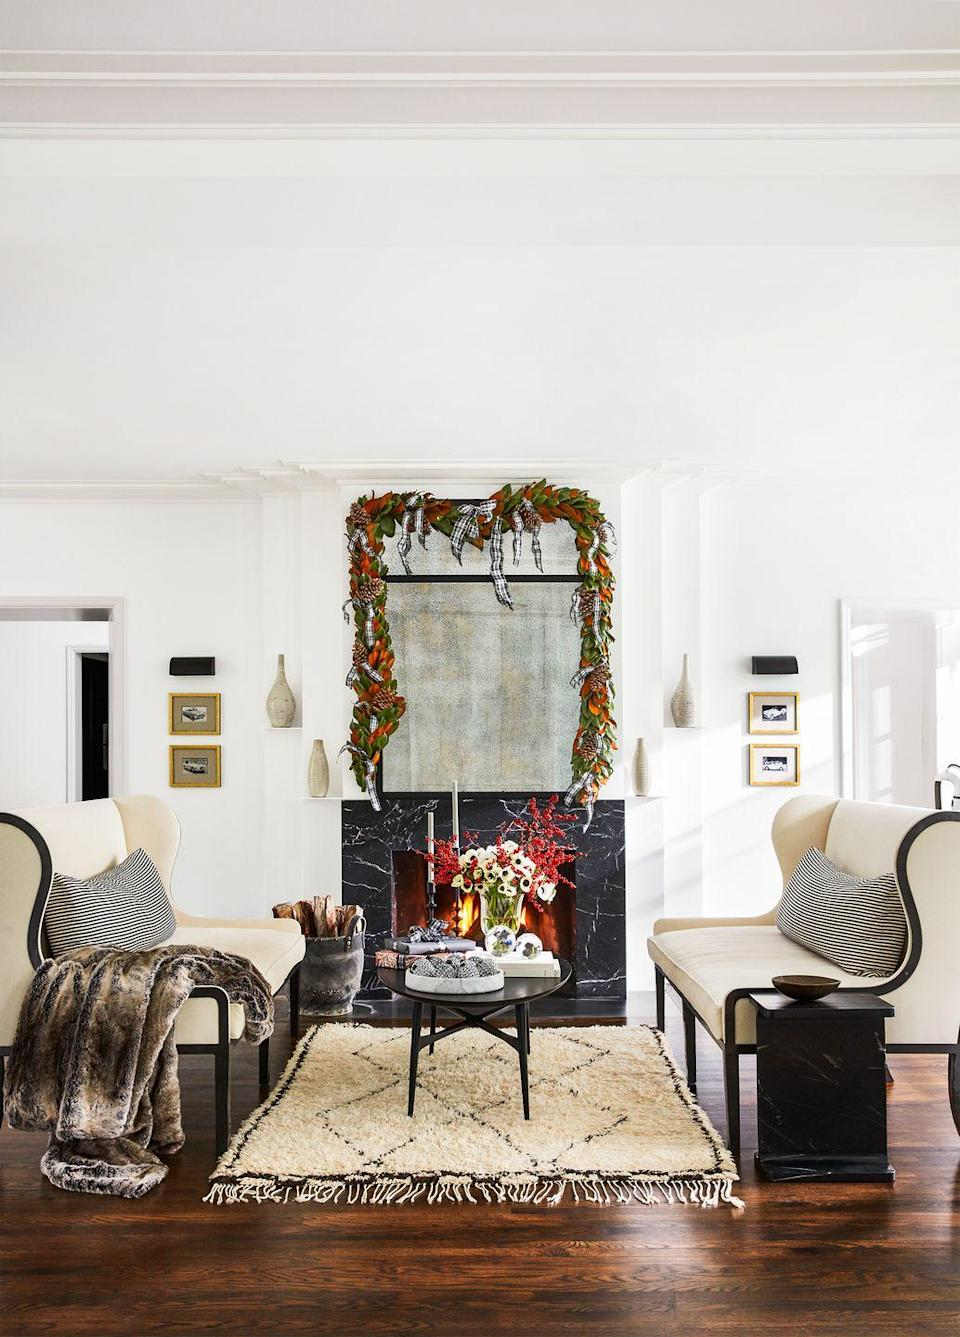 """<p>Another option if you don't want a ribbon on your tree but want to display the accent in some way: Add it to a garland over your mantel. This elevated one in the home of CB2 president <a href=""""https://www.housebeautiful.com/entertaining/holidays-celebrations/g22996924/fireplace-christmas-mantel-decorations/"""" rel=""""nofollow noopener"""" target=""""_blank"""" data-ylk=""""slk:Ryan Turf"""" class=""""link rapid-noclick-resp"""">Ryan Turf</a> features hanging pieces of ribbon throughout.</p>"""